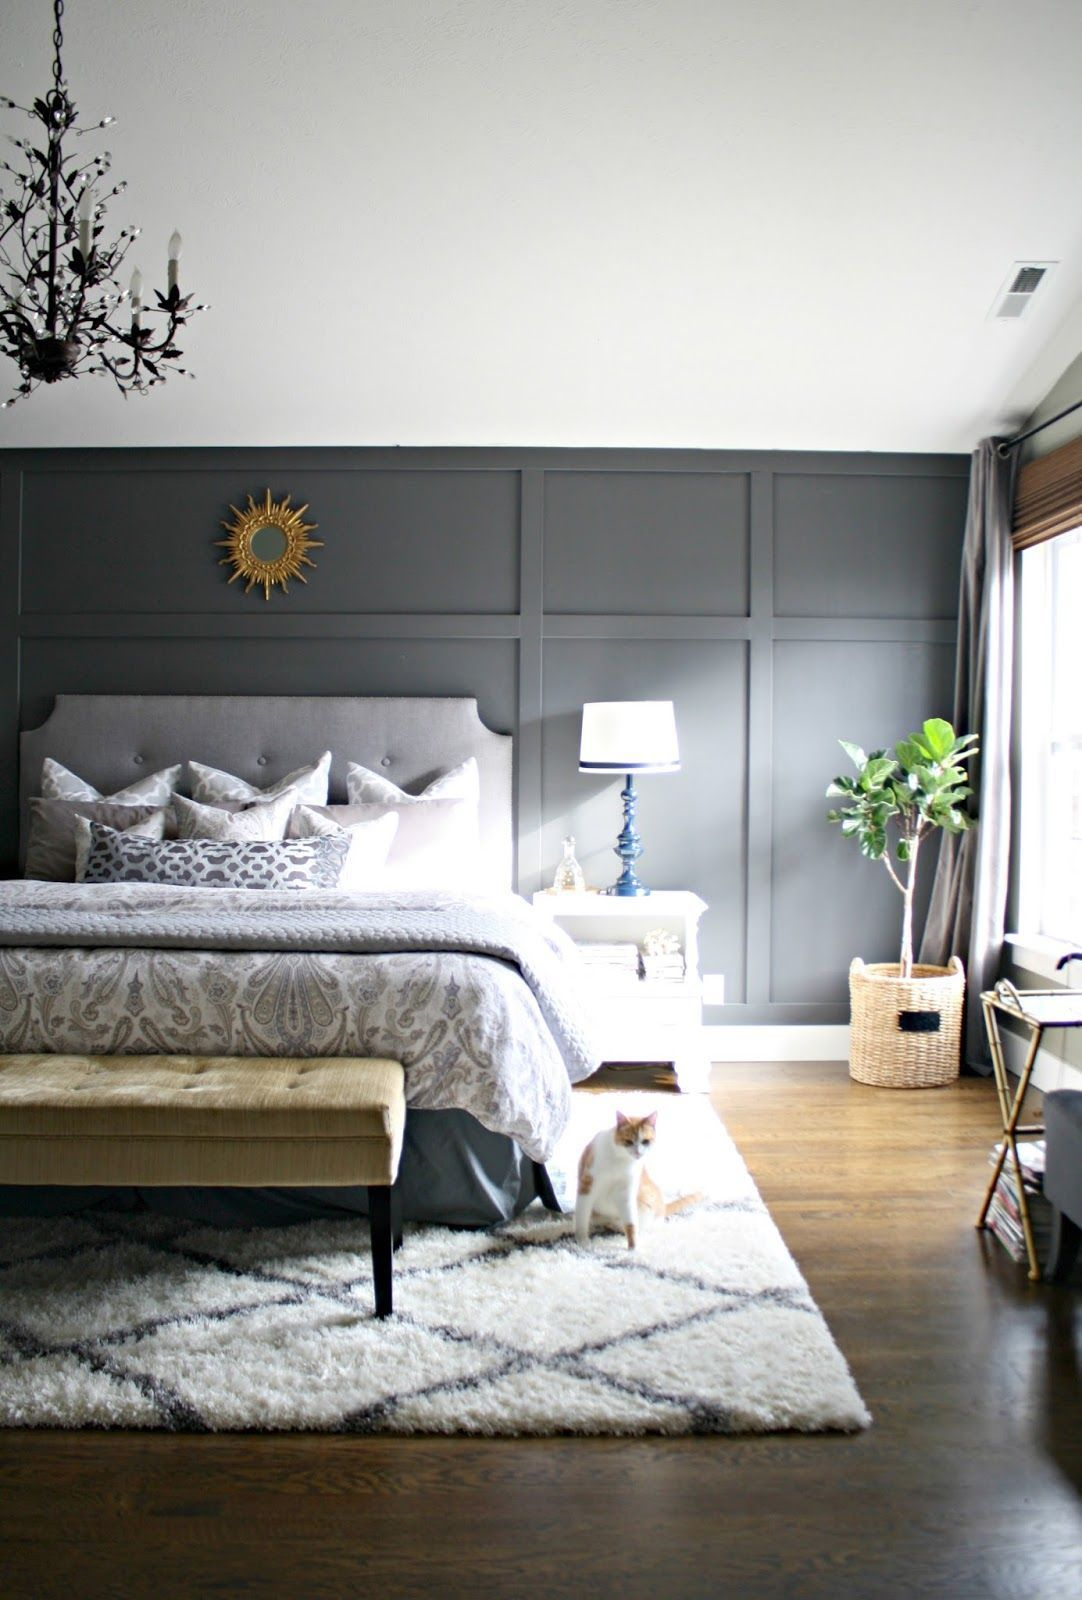 55 Cozy Master Bedroom Ideas 2020 For Your Inspiration Small Master Bedroom Cozy Master Bedroom Remodel Bedroom